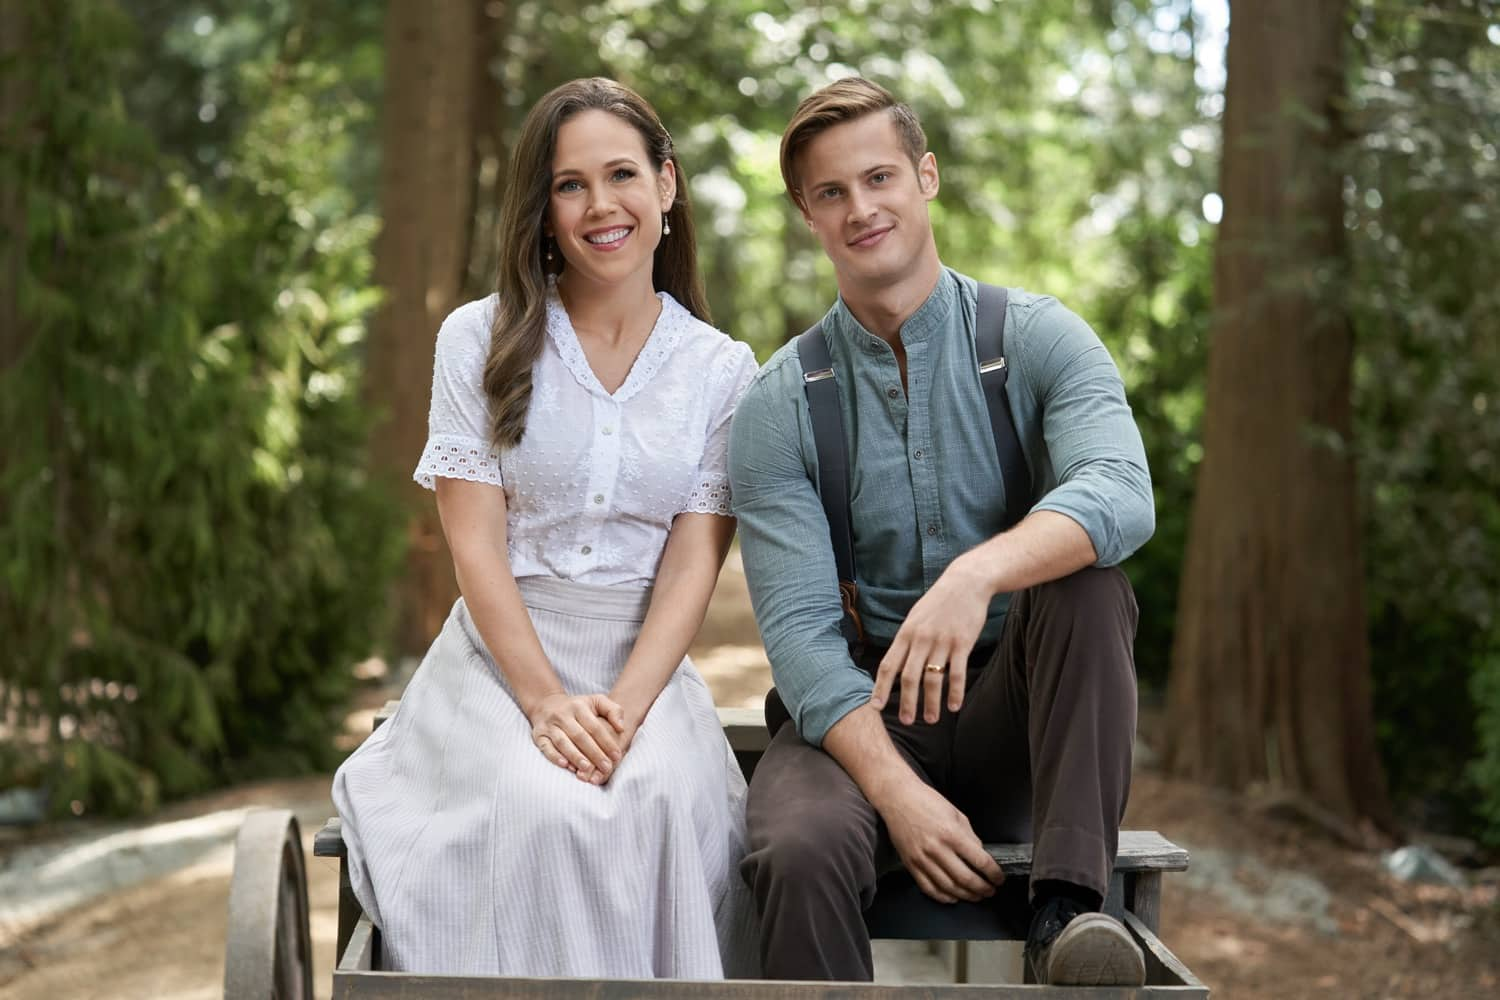 When Calls The Heart Season 8 Episode 4 The inquiry begins, and Nathan starts to question his own actions. Meanwhile, the Canfields, a new family in town, buy Gowen's cabin and Elizabeth welcomes them. Lee's sister and niece arrive in Hope Valley.   Photo: Erin Krakow, Aren Buchholz